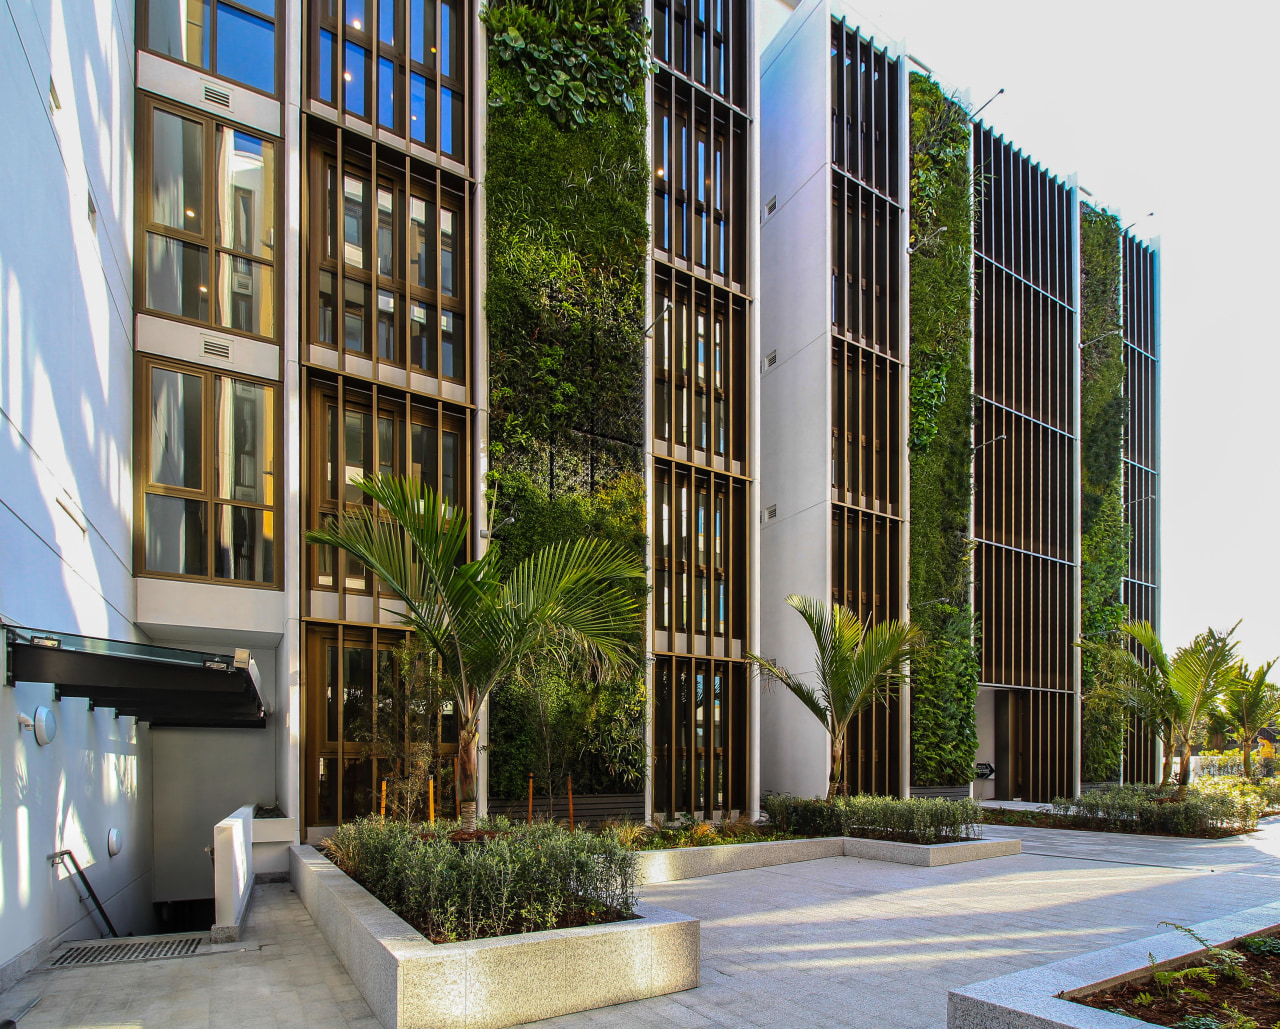 A 330m² lush feature wall earned the high-end apartment, residences,  architecture, building, commercial building, condominium, corporate headquarters, facade, headquarters, property, urban design, St Marks Residences, Homestar Innovation, Dominion constructors